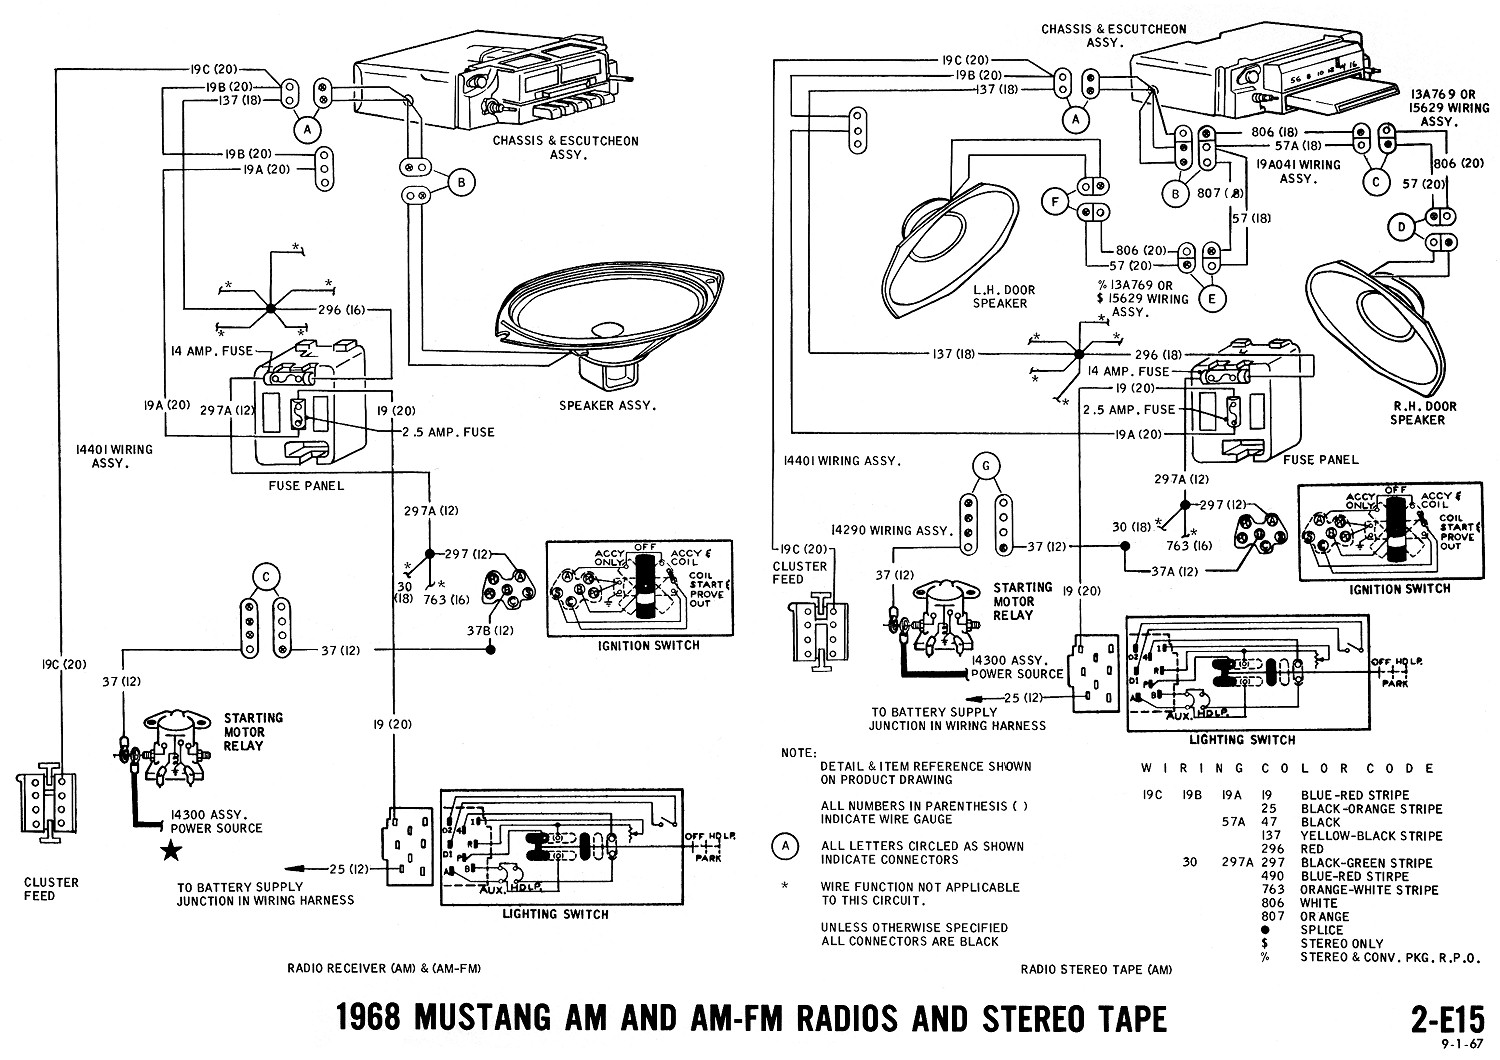 2000 mustang radio wiring diagram radio wiring diagram for 2000 1968 mustang wiring diagrams evolving software